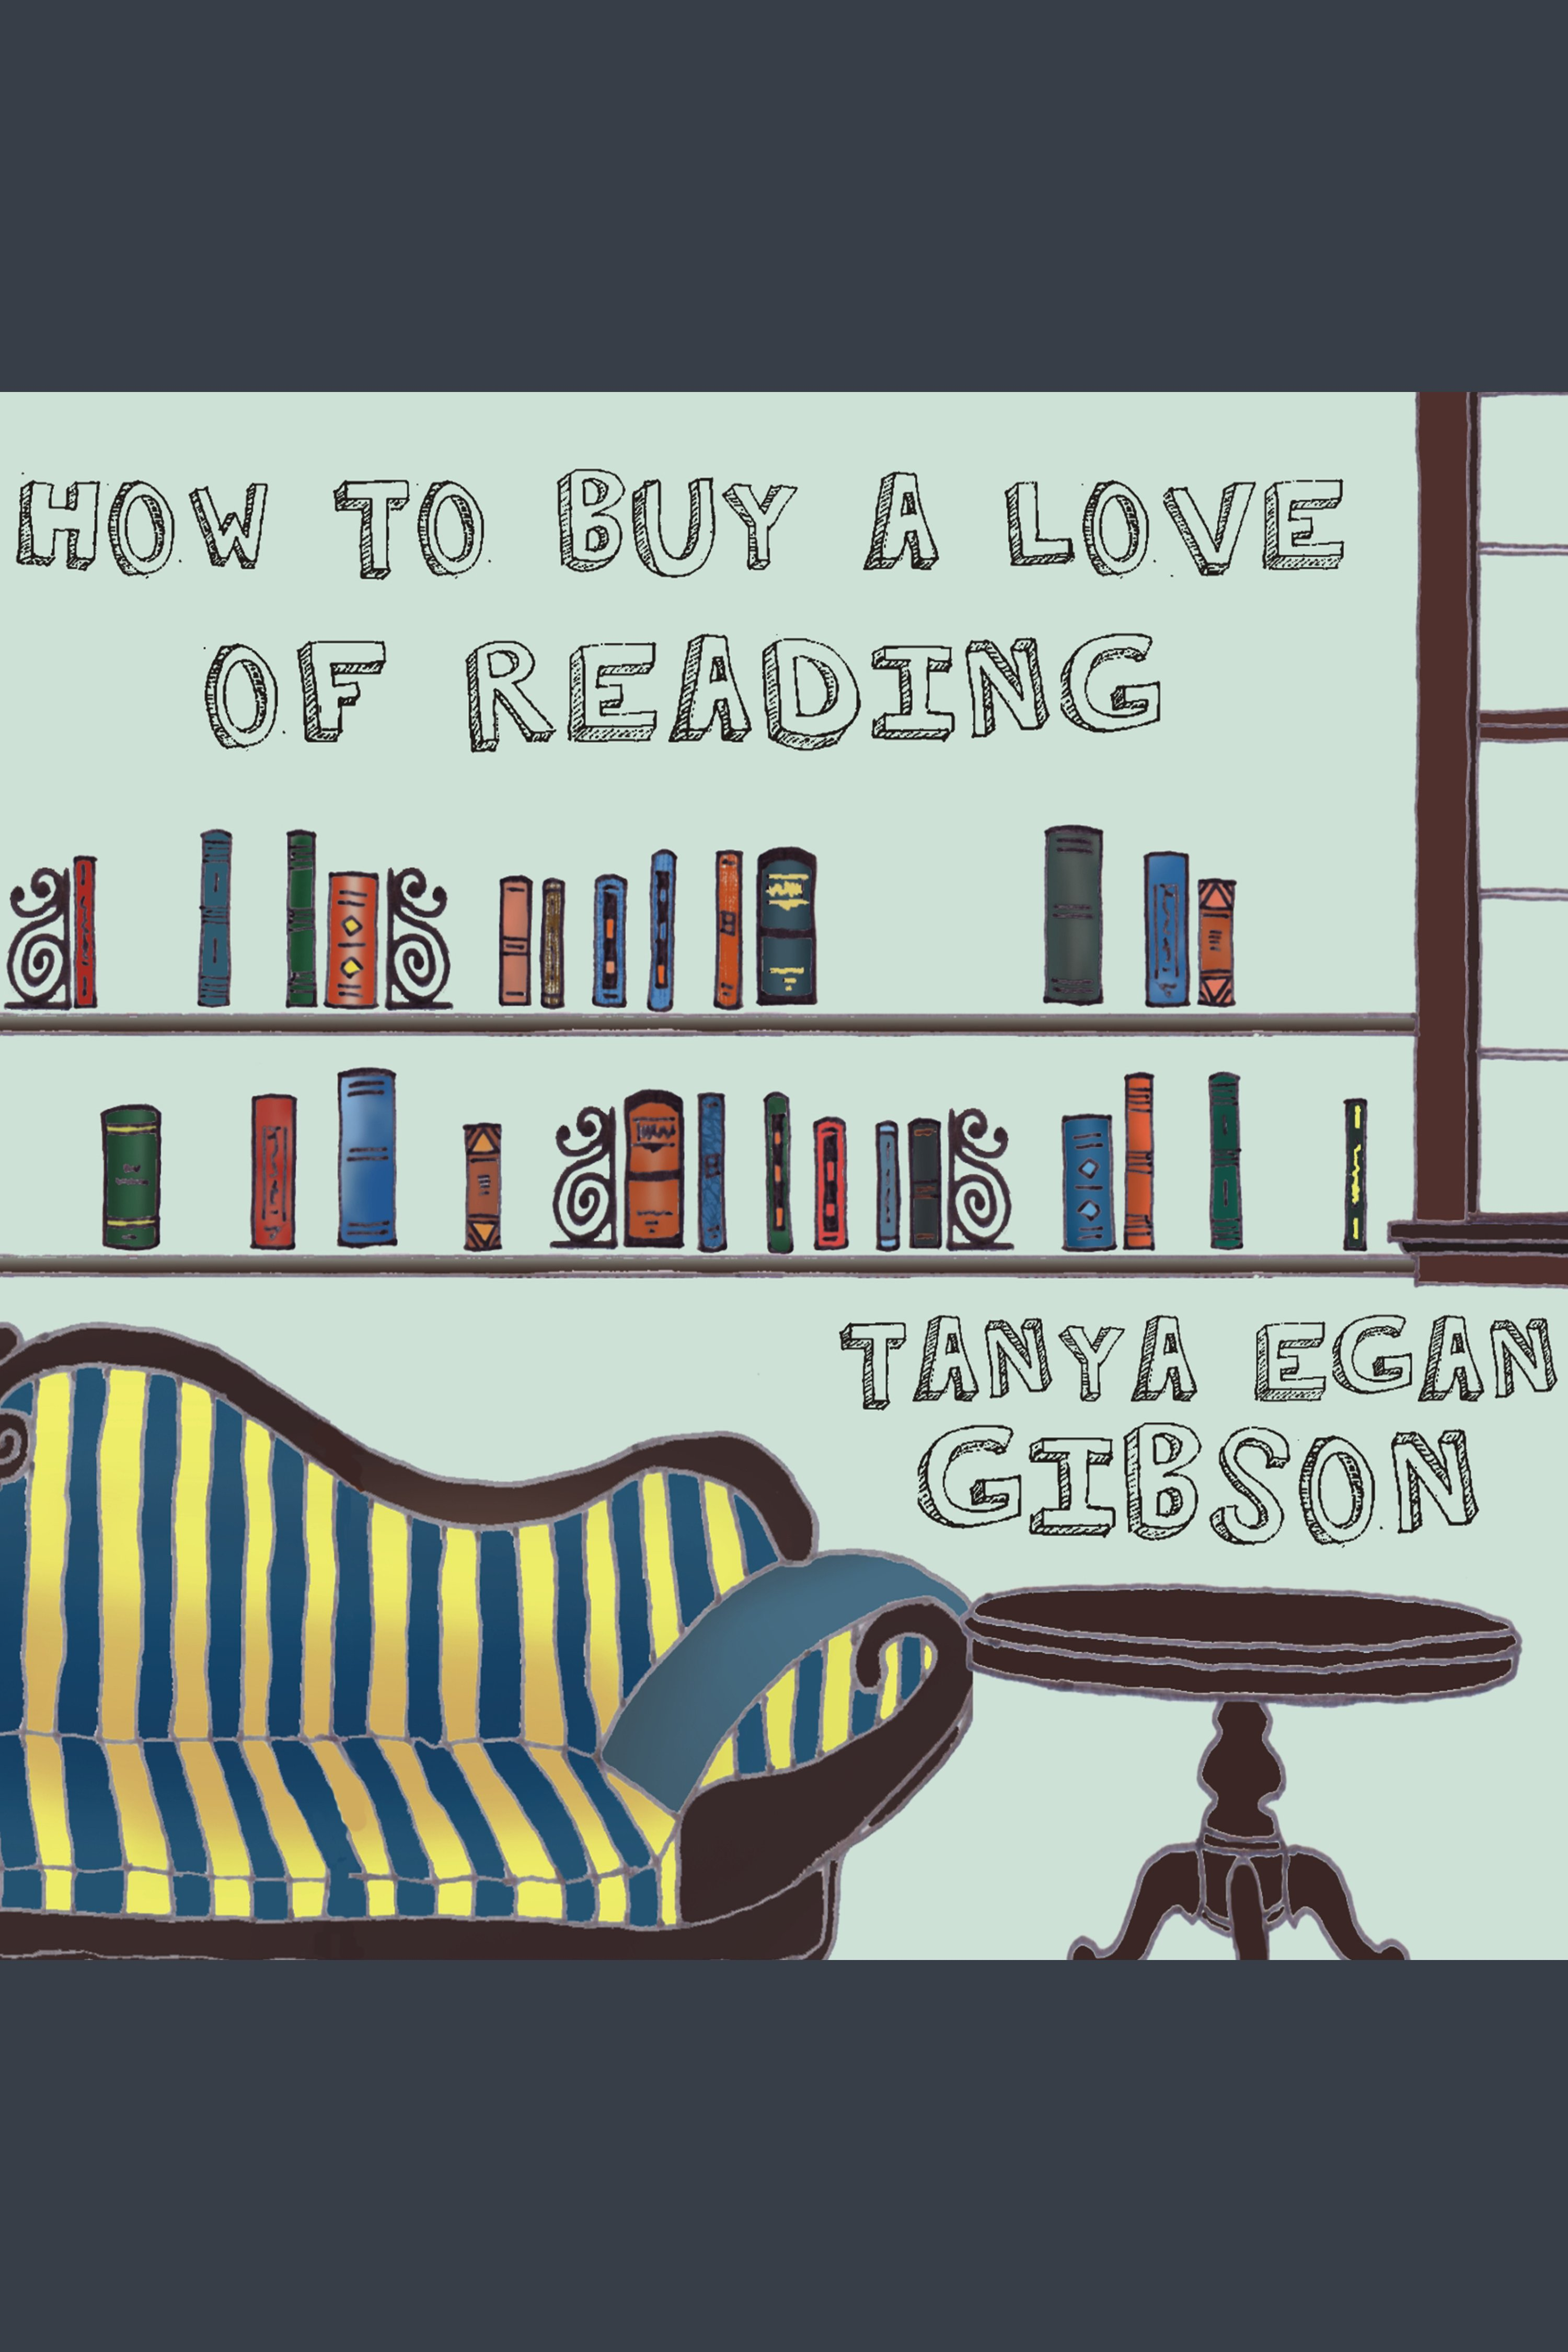 How to buy a love of reading cover image